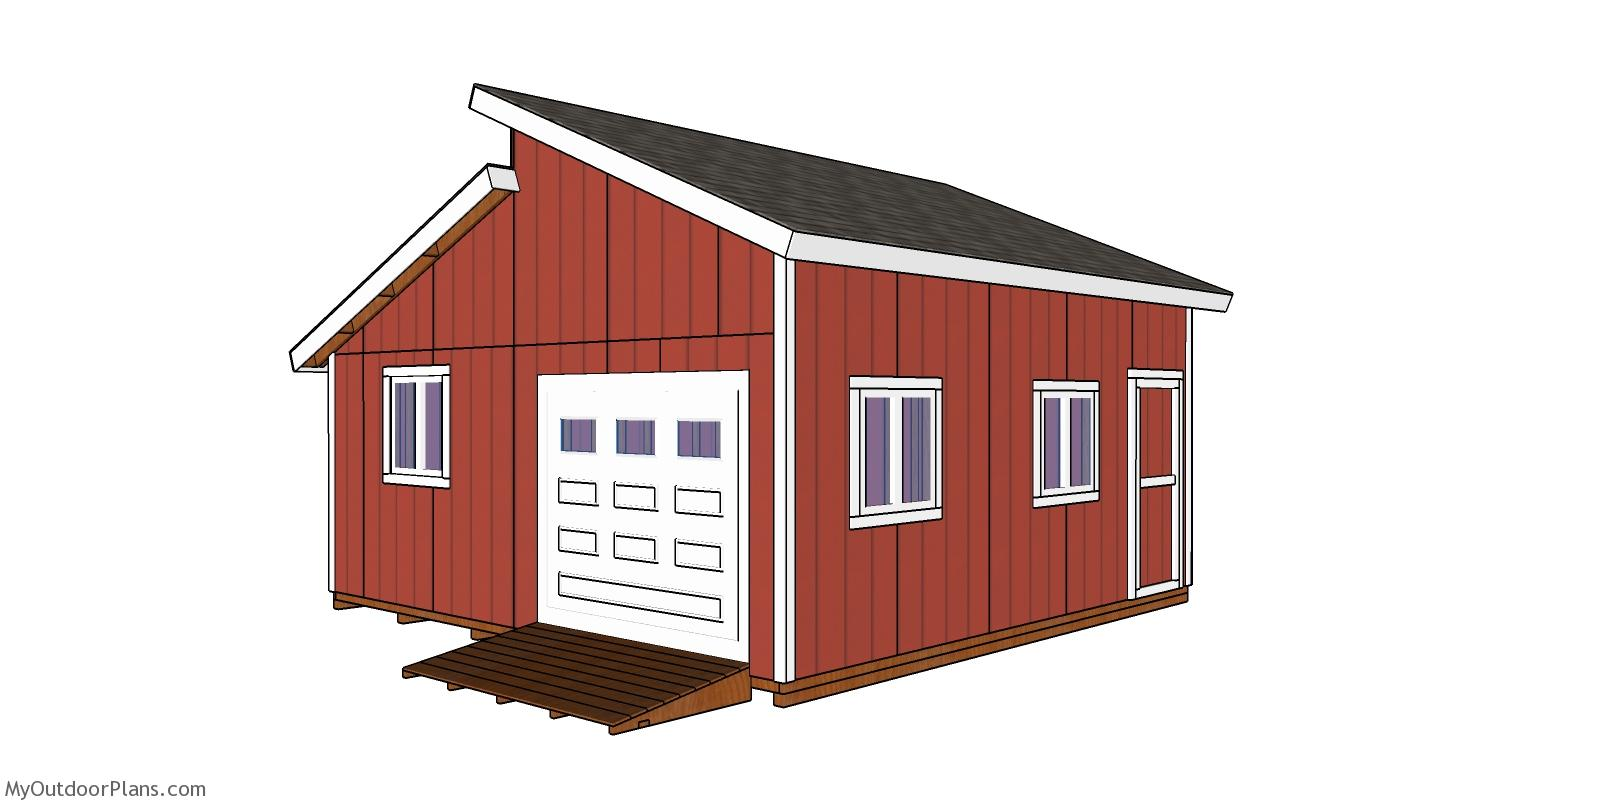 20x20 Clerestory Shed - Free Shed Plans and Drawings